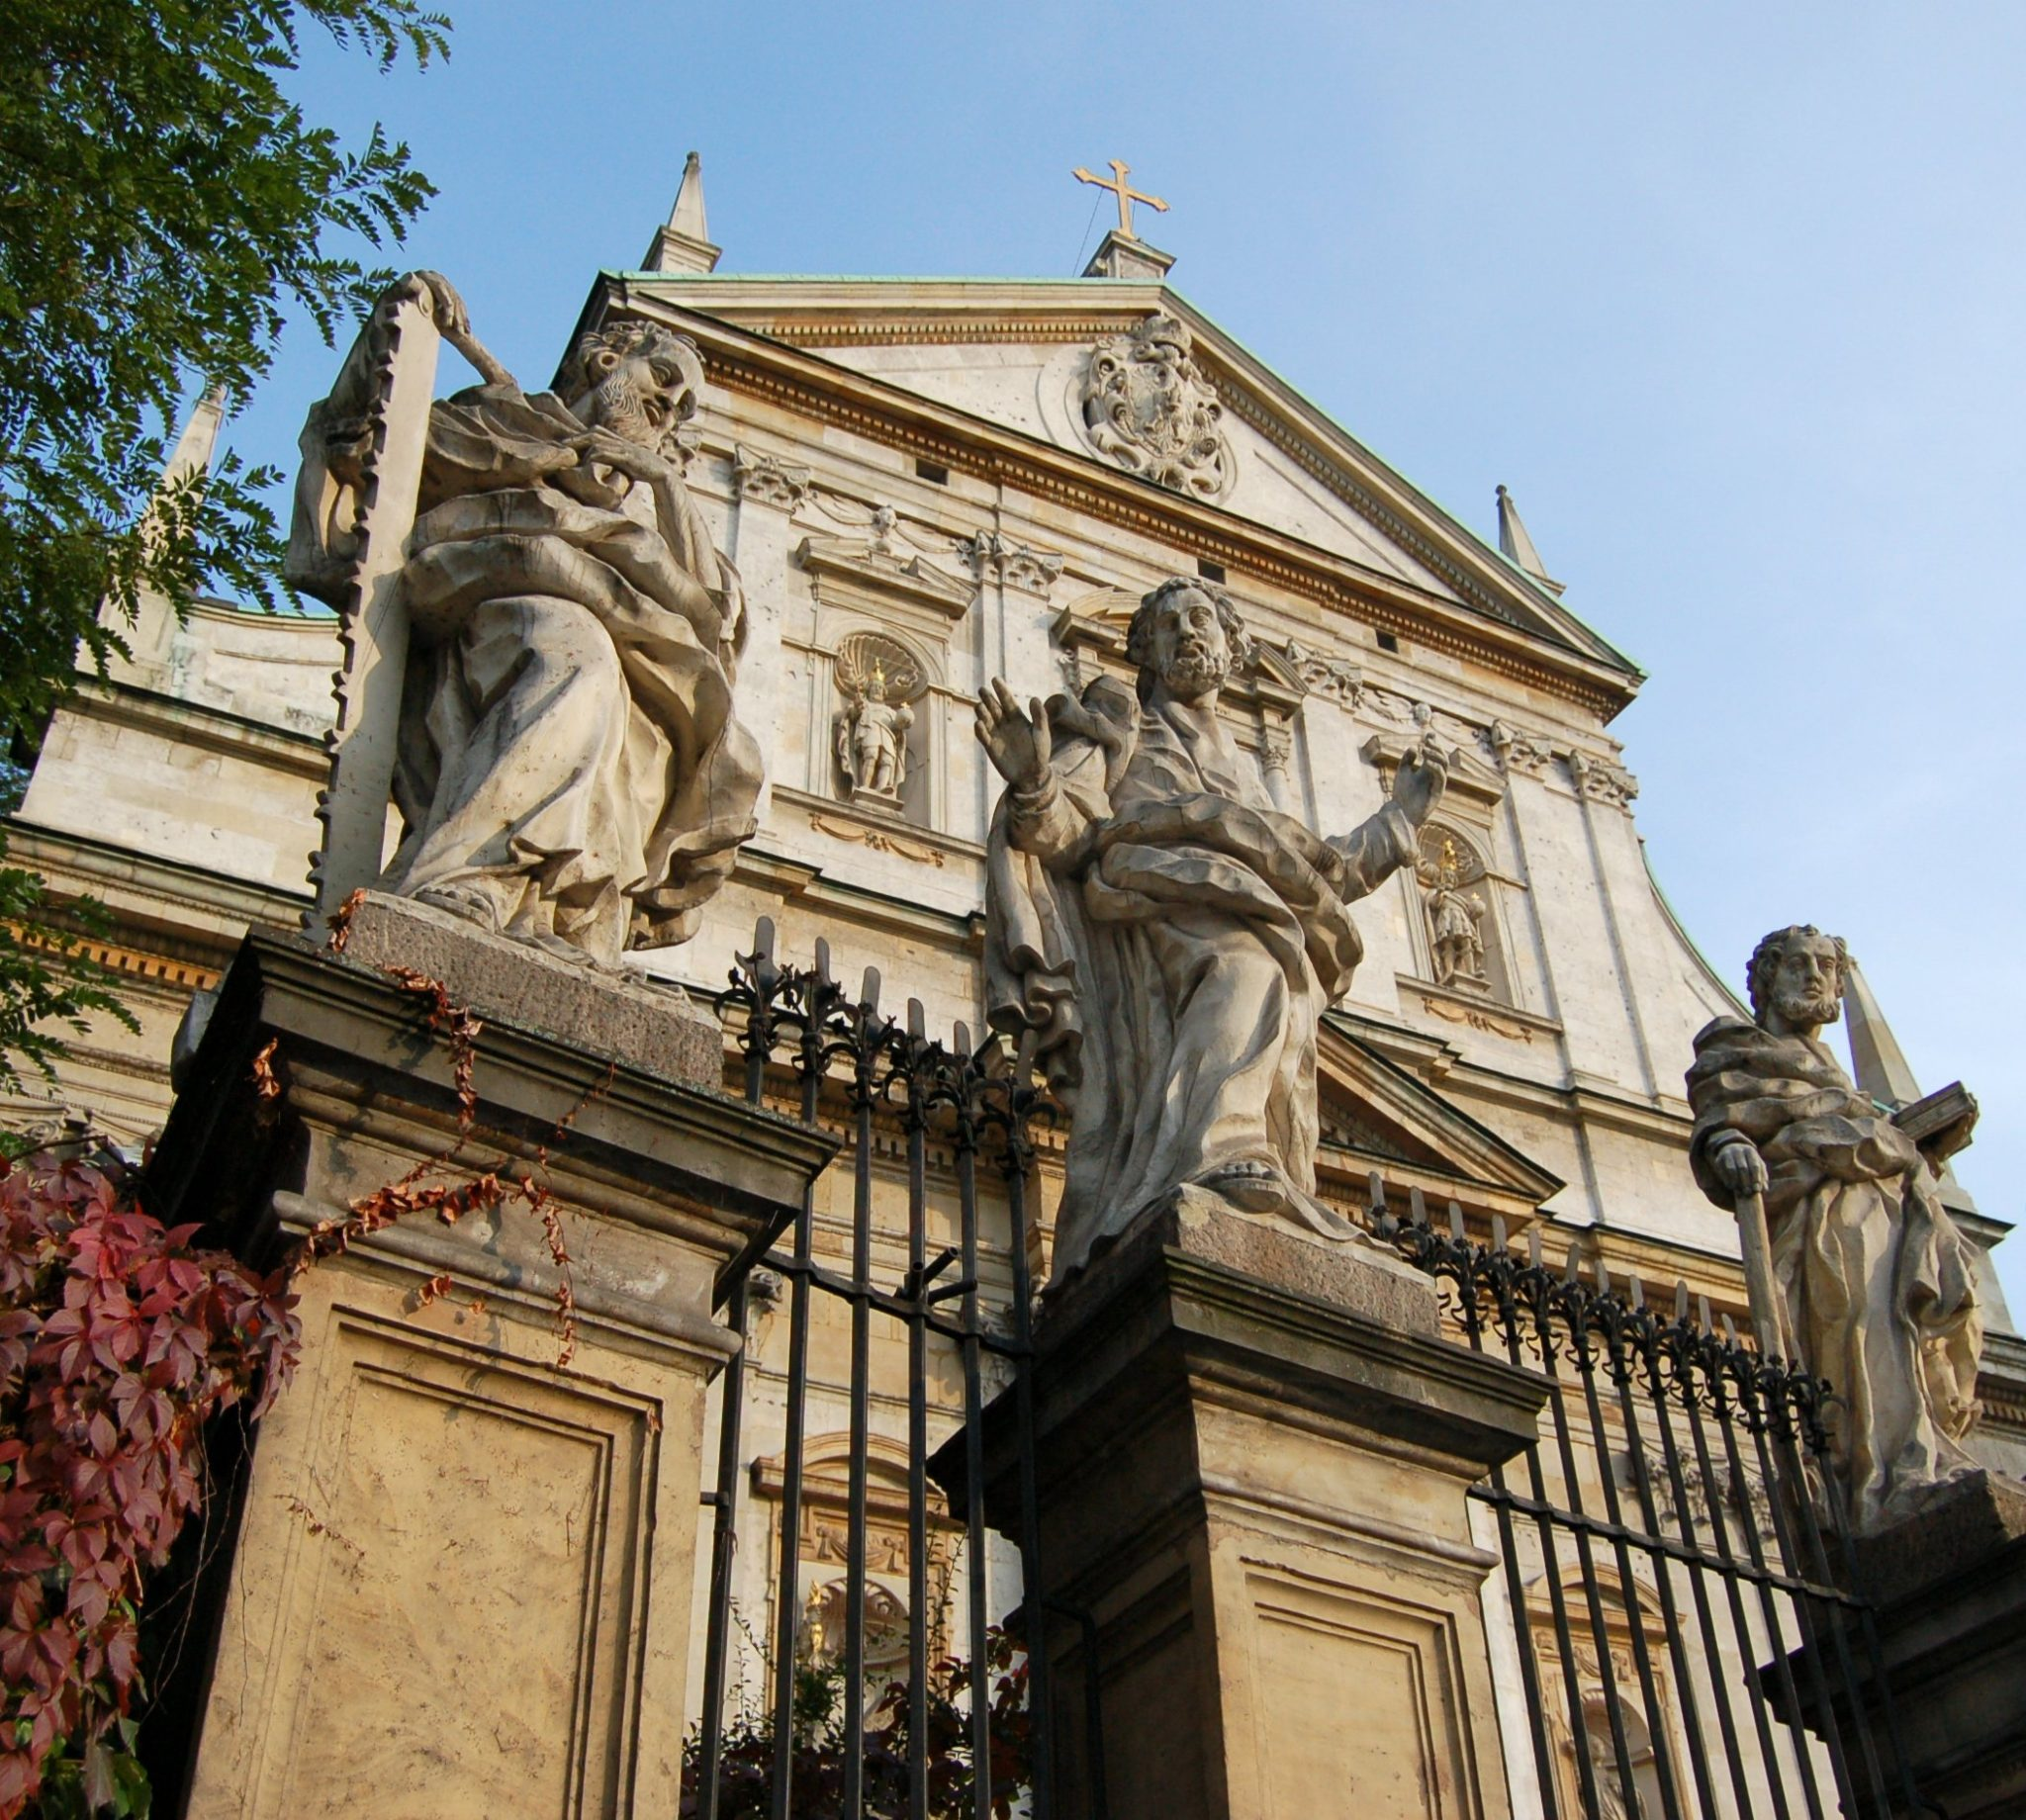 Apostoles on the fence of The Church of Saints Peter and Paul